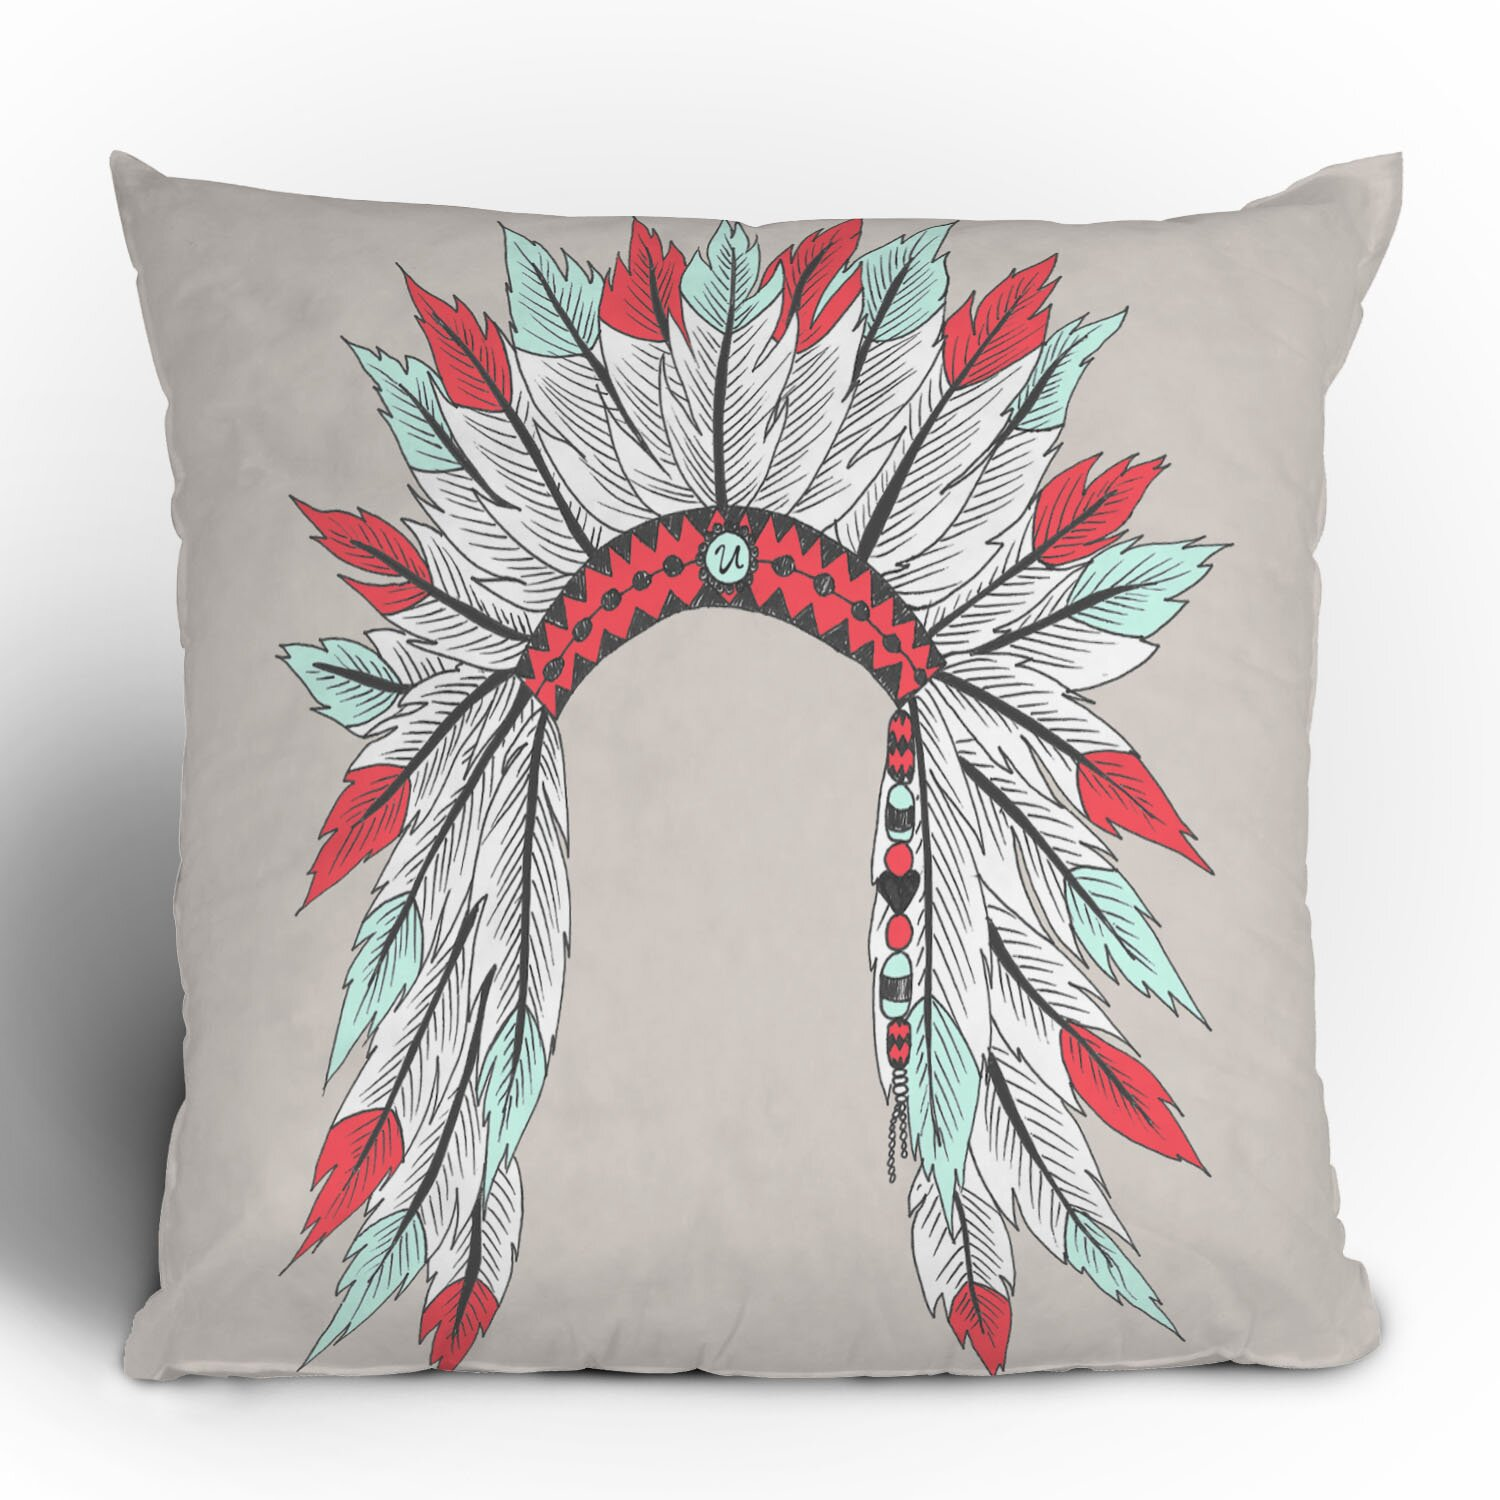 Decorative Pillows With Bird Design : DENY Designs Wesley Bird Dressy Throw Pillow & Reviews Wayfair